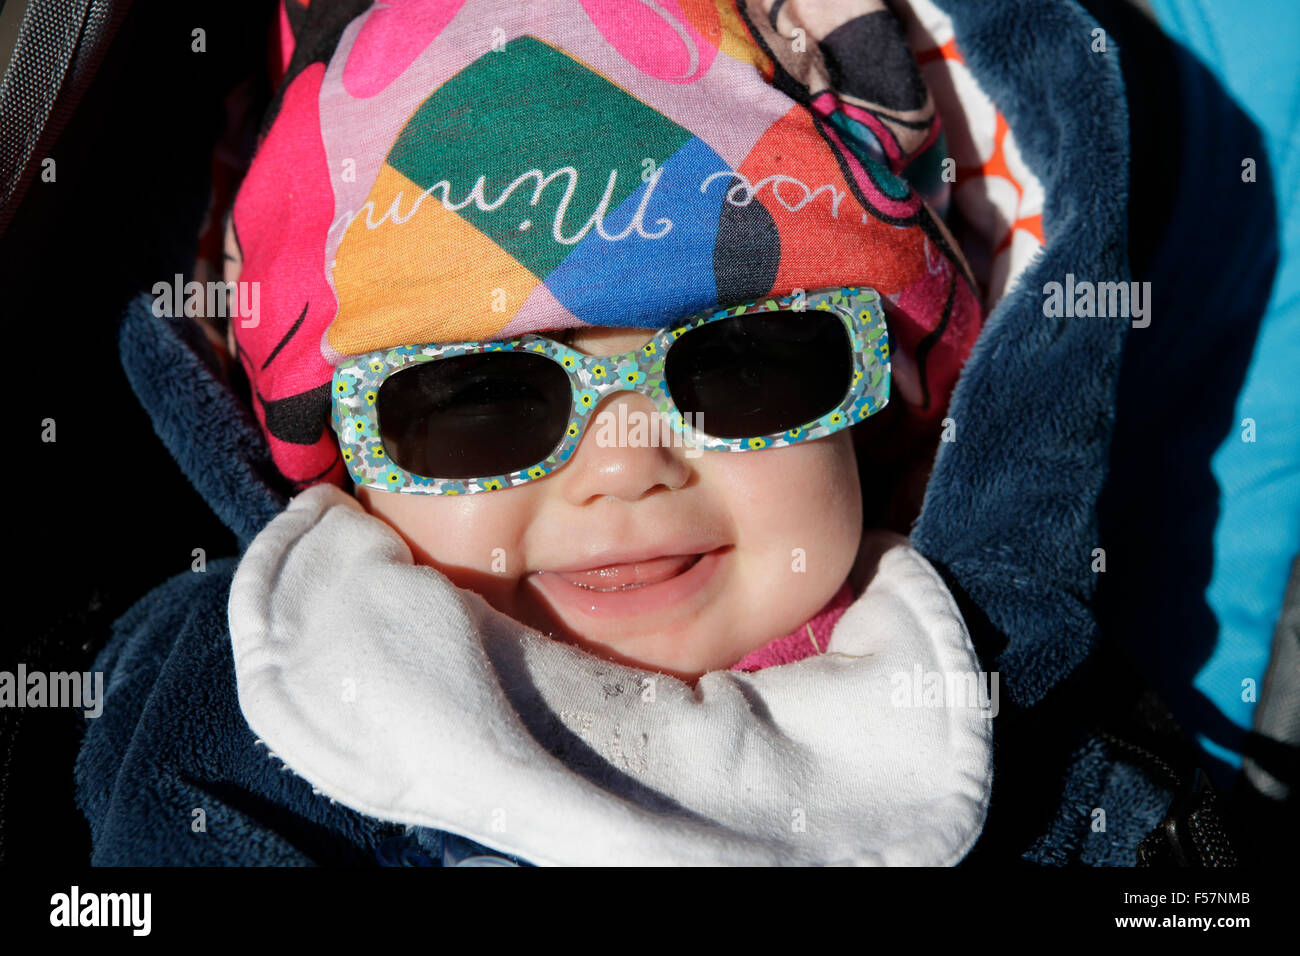 Little baby with sunglasses and caps. - Stock Image